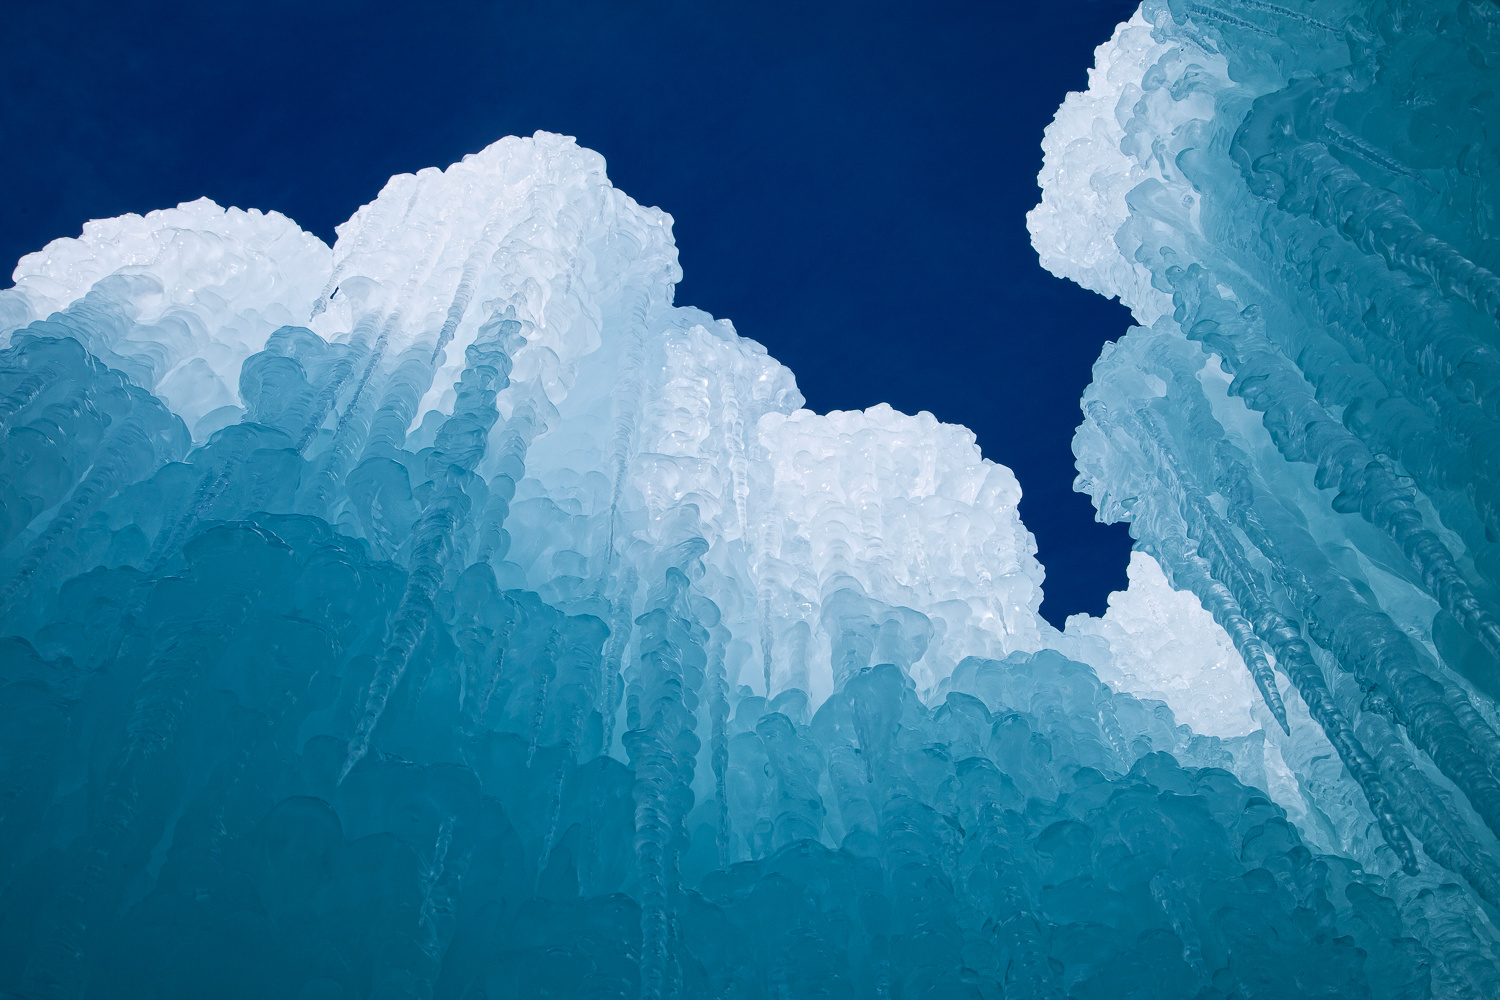 Pillars of Ice by Rob Lace